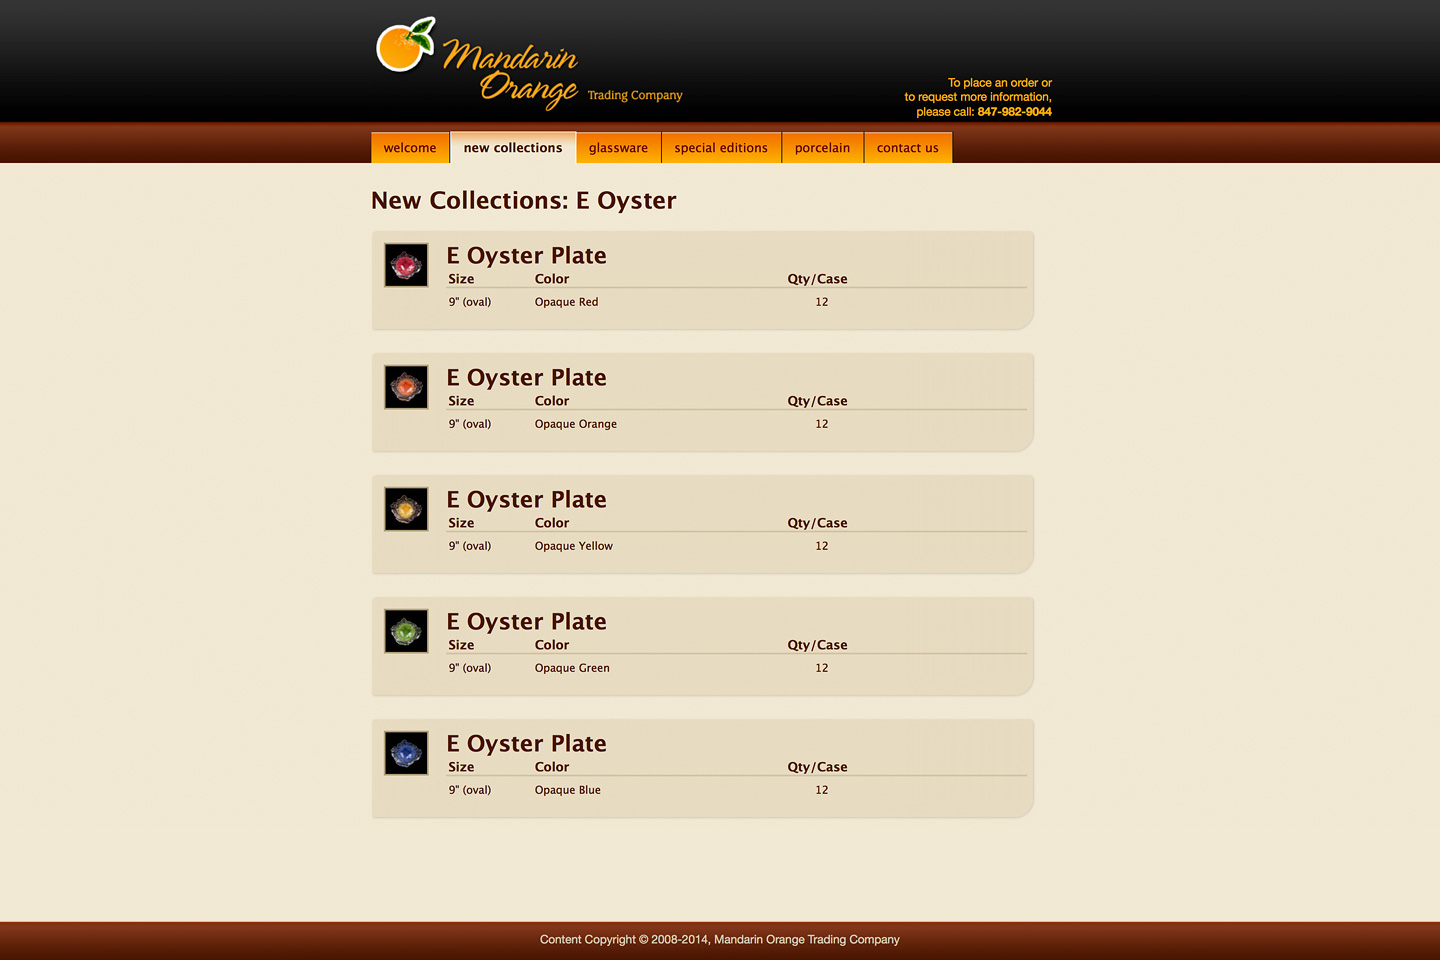 a screen capture of the mandarin orange trading company oyster plate landing page, featuring thumbnails of all oyster plates and their available colors